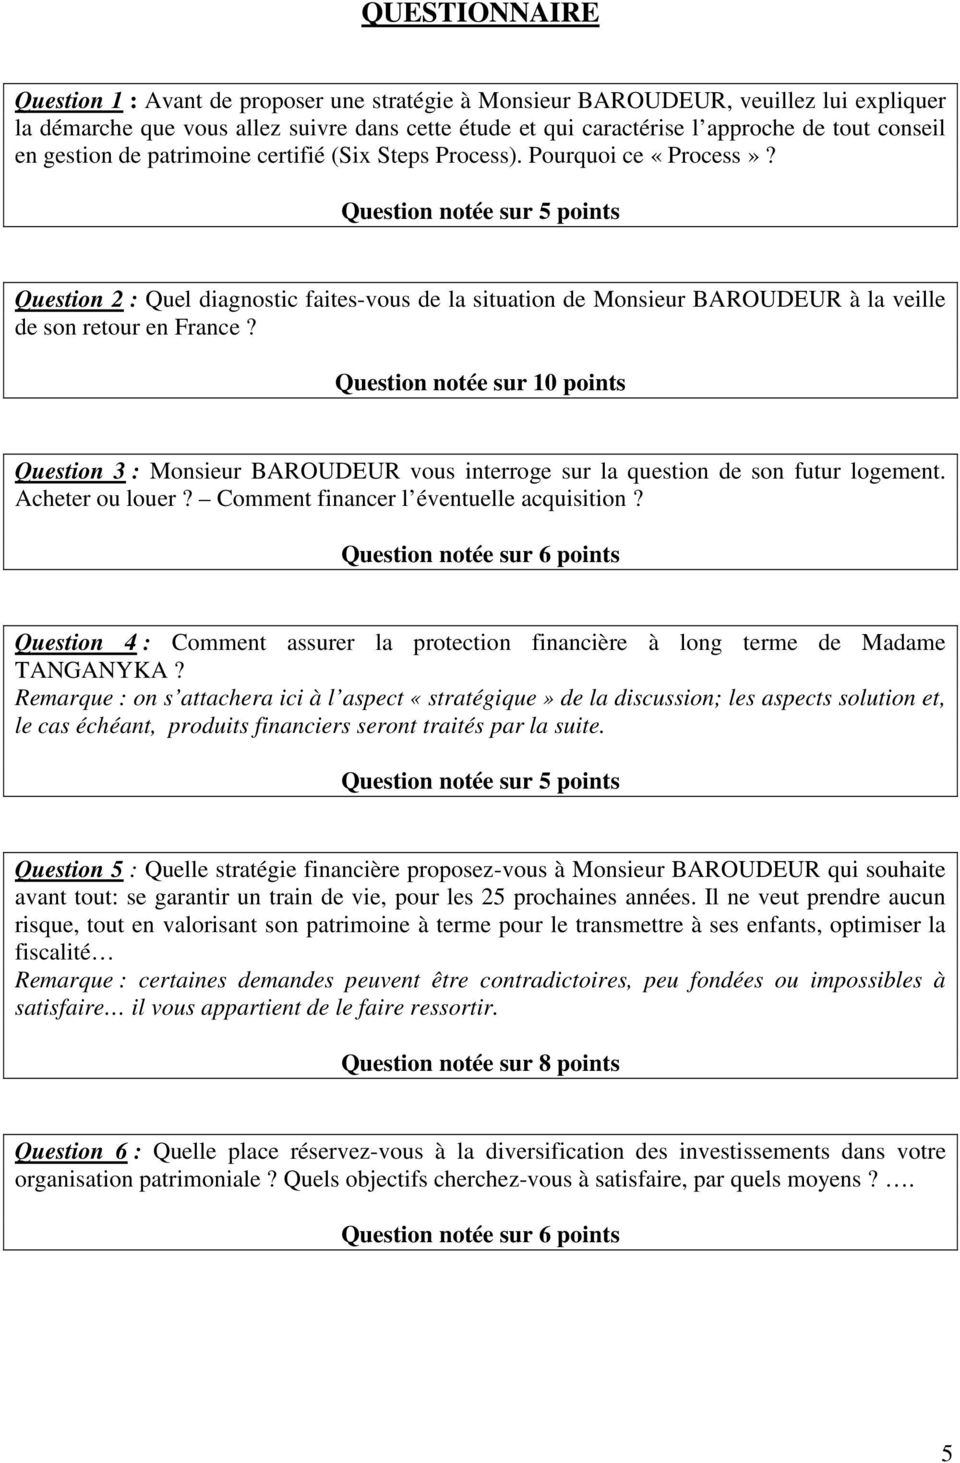 Question notée sur 5 points Question 2 : Quel diagnostic faites-vous de la situation de Monsieur BAROUDEUR à la veille de son retour en France?